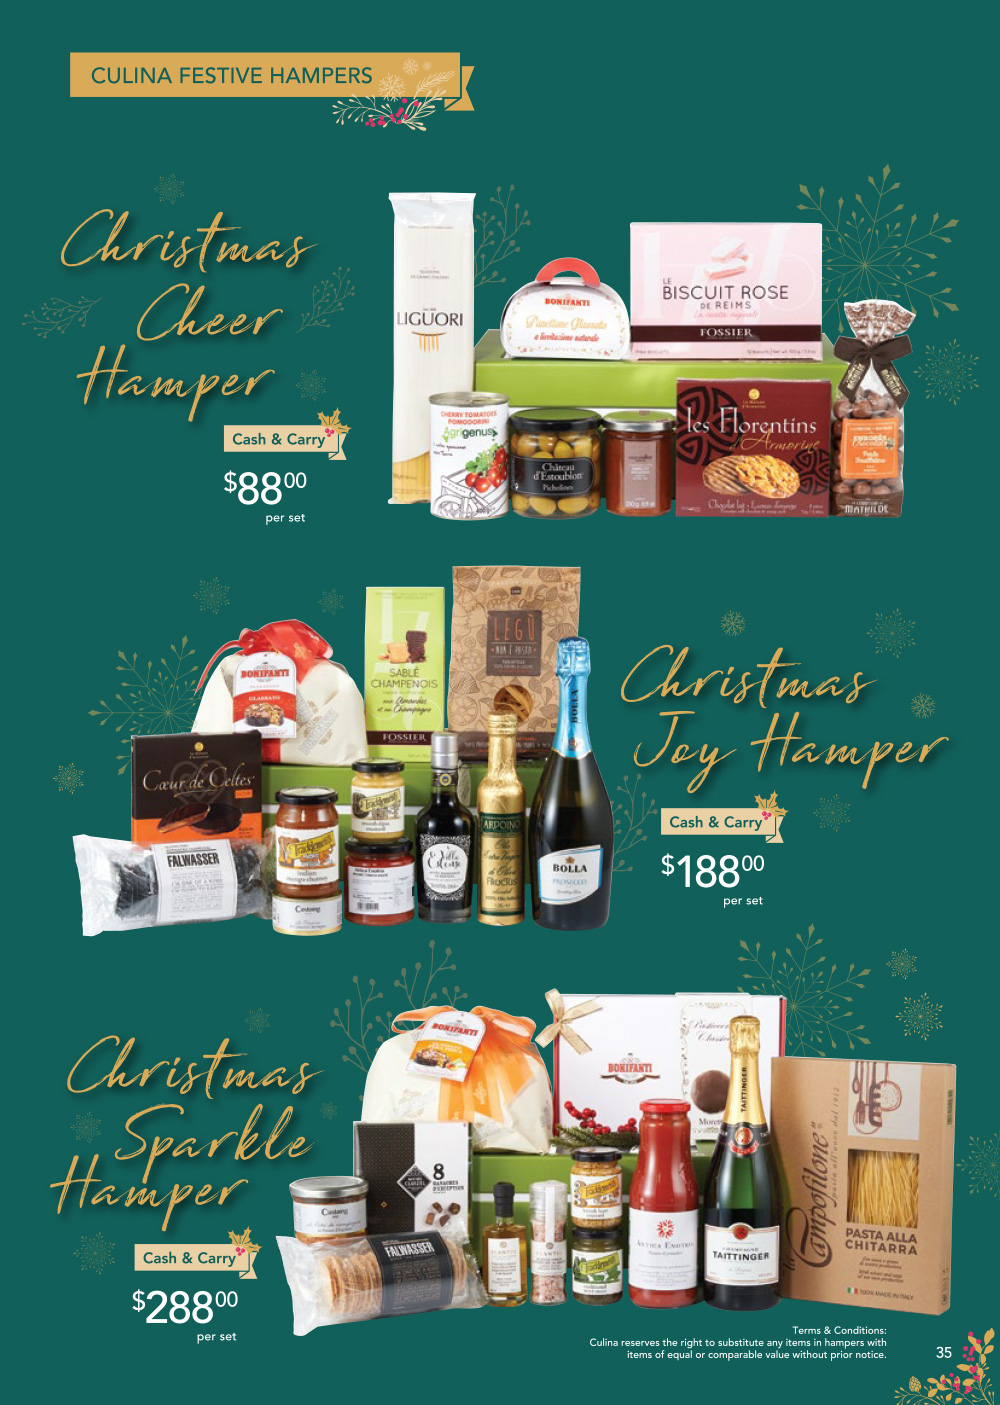 FairPrice Finest Christmas Catalogue 2019 - Culina Festive Hampers